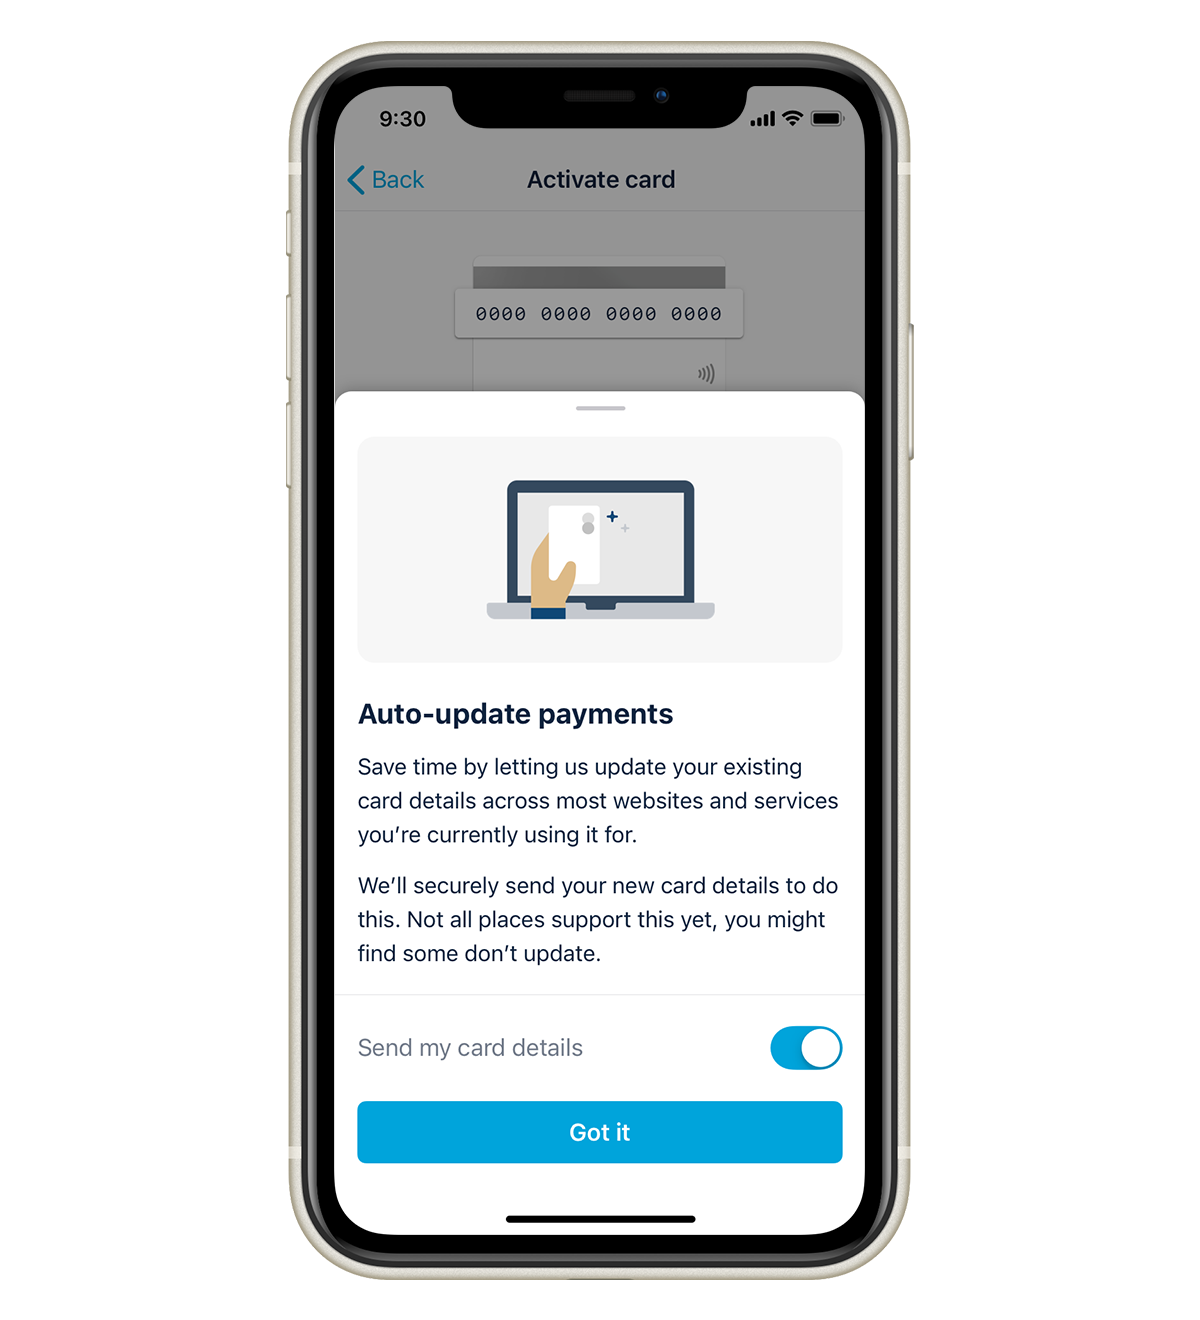 """A pop up screen in the Monzo app. It says """"Save time by letting us update your existing card details across most websites and services you're currently using it for. We'll securely send your new card details to do this. Not all places support this yet, you might find some don't update""""."""